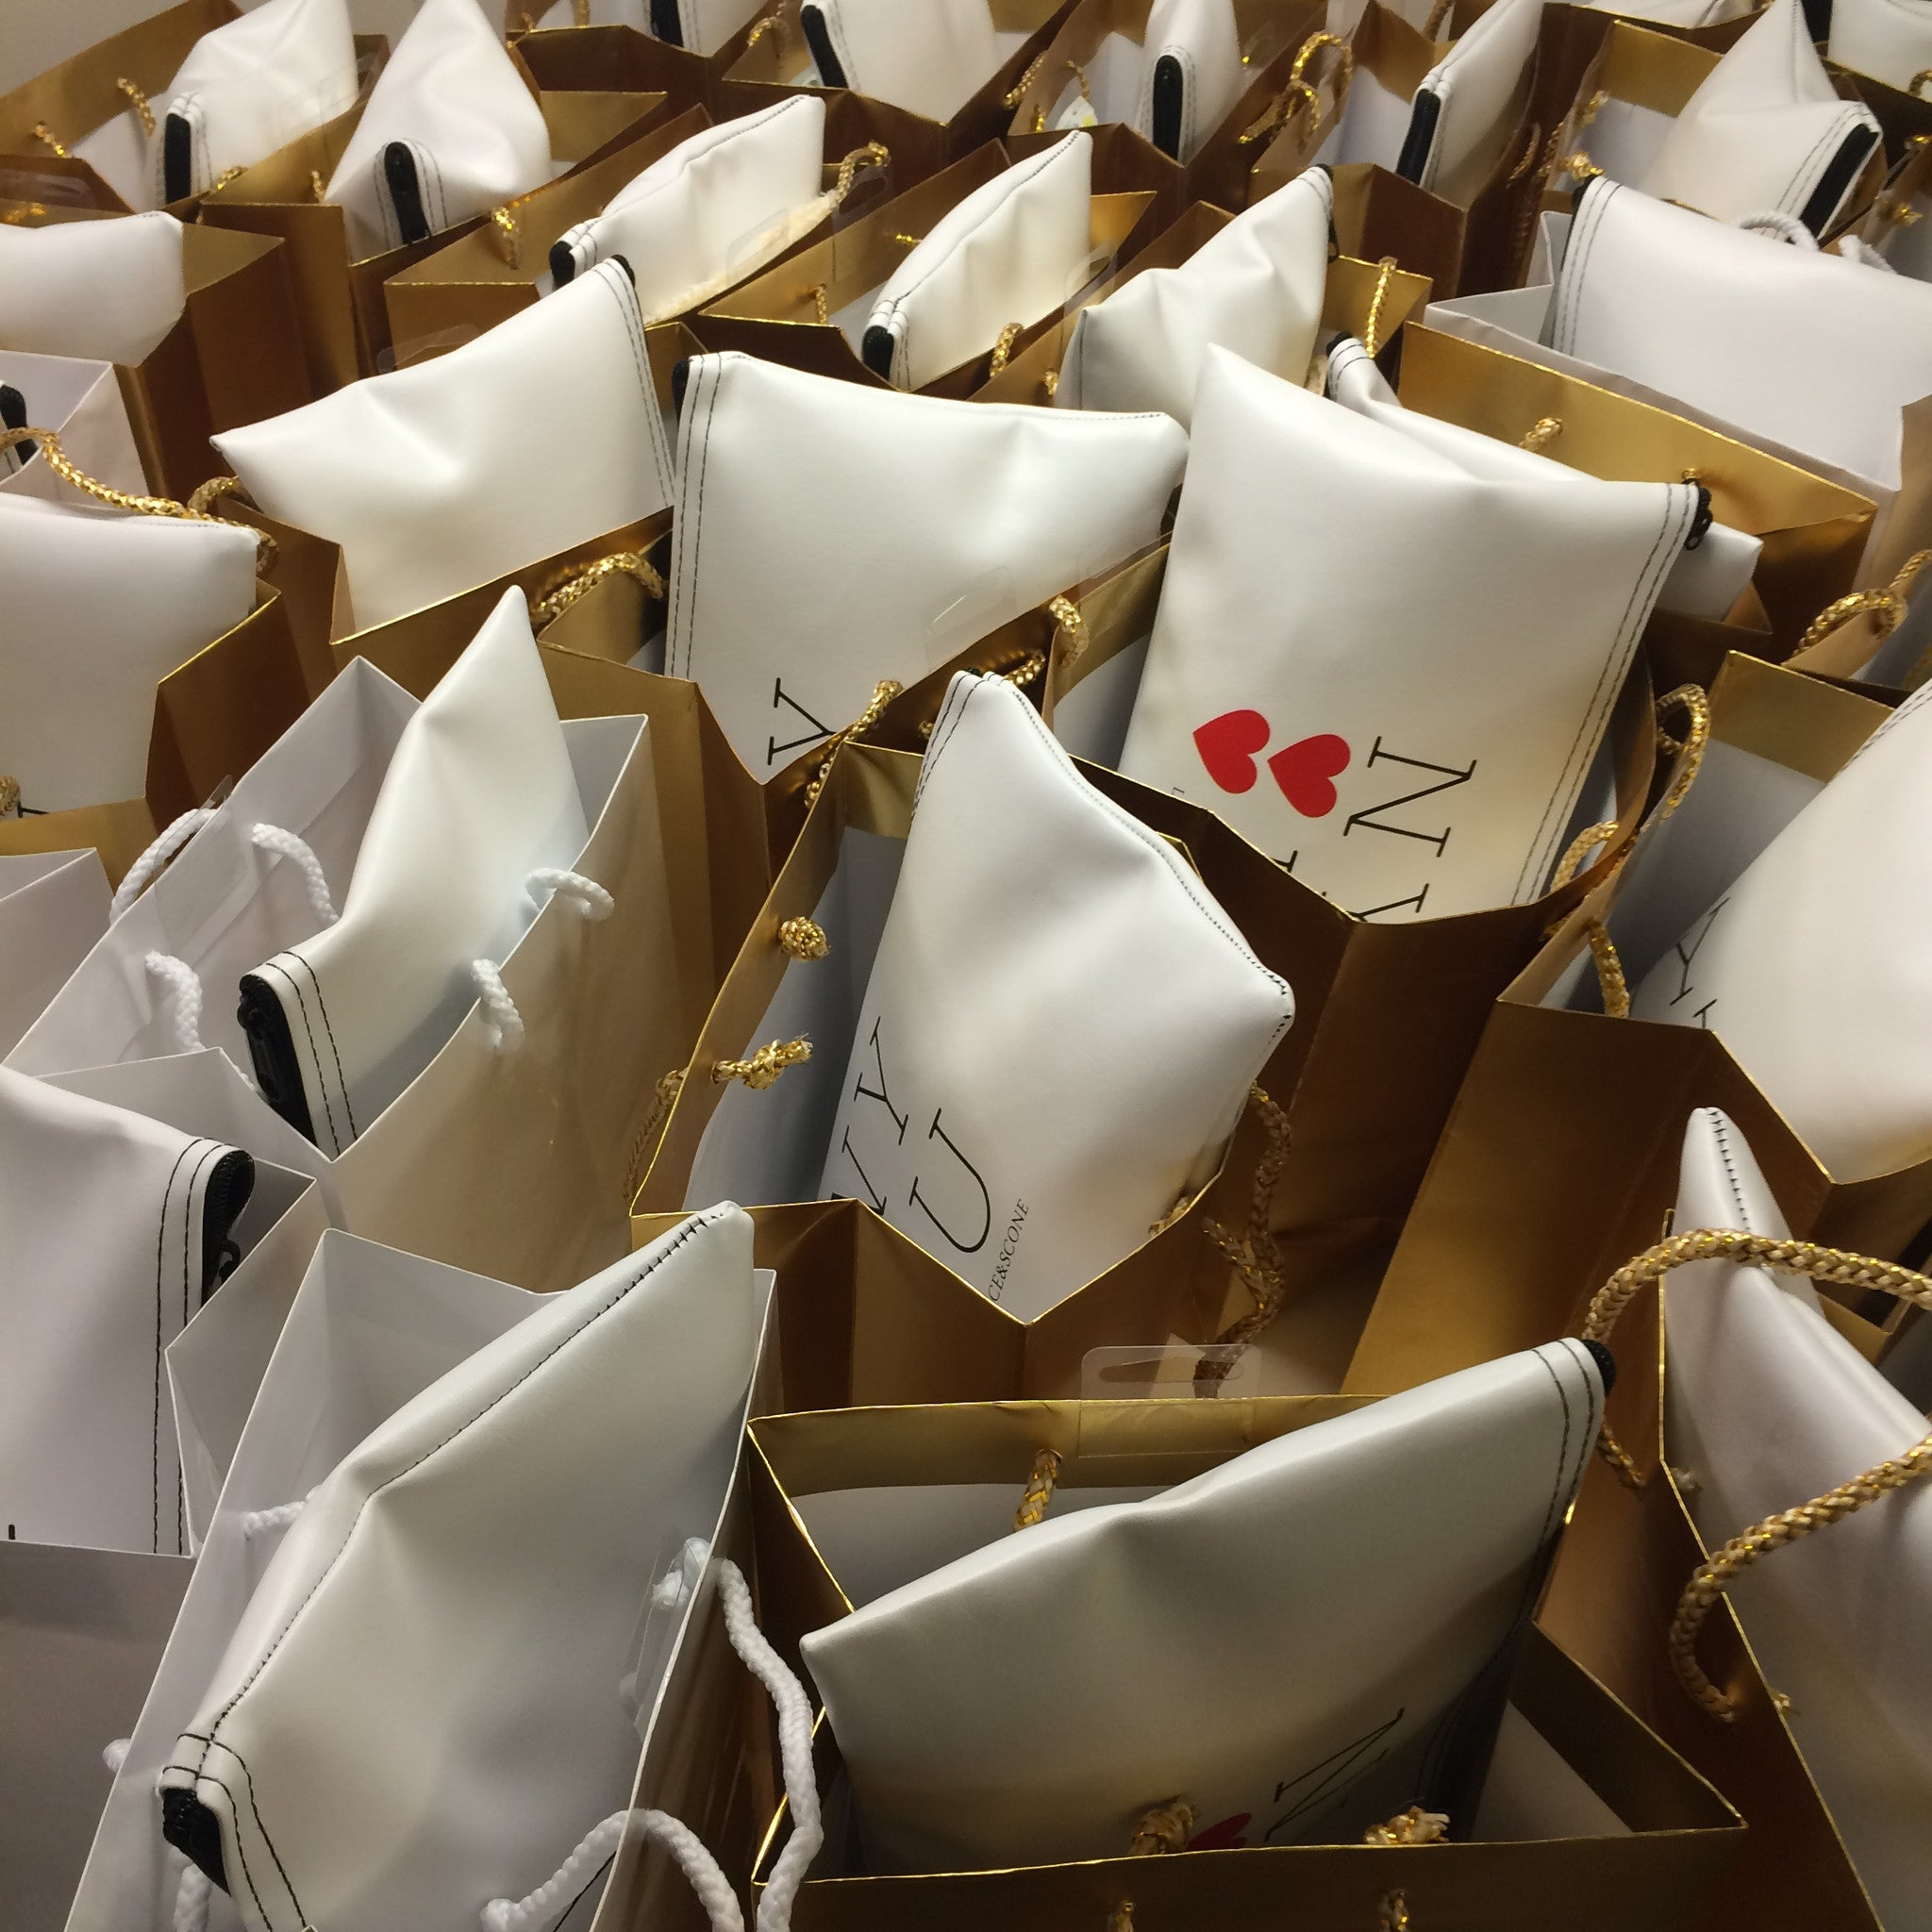 Lace and Scone donates NYHeartsU homeless care kits